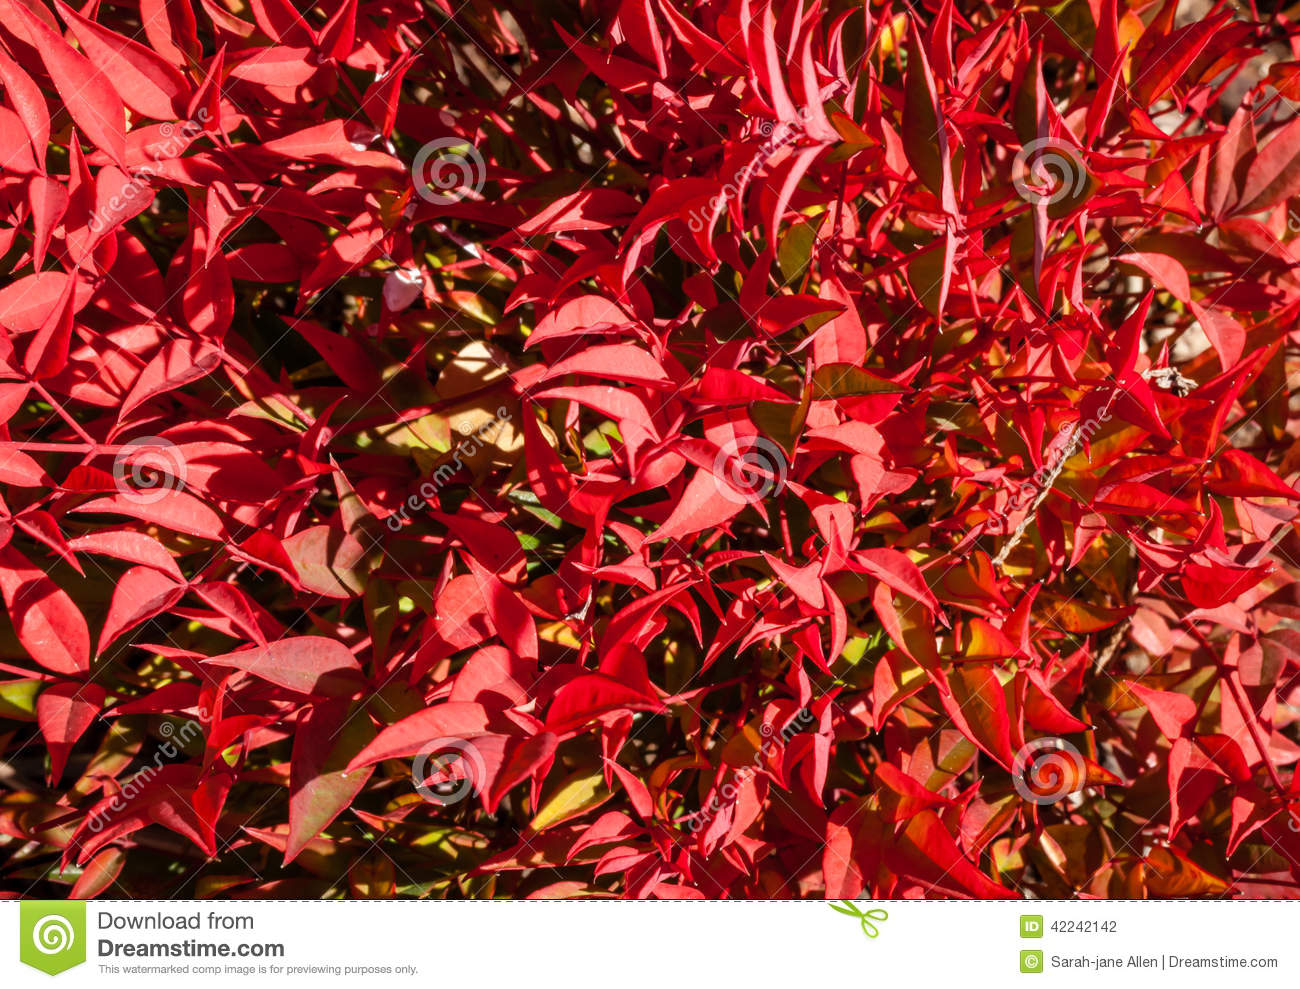 Beautiful bright red winter leaves of dwarf nandina cultivar stock photo image 42242142 for Comarbuste a feuille rouge